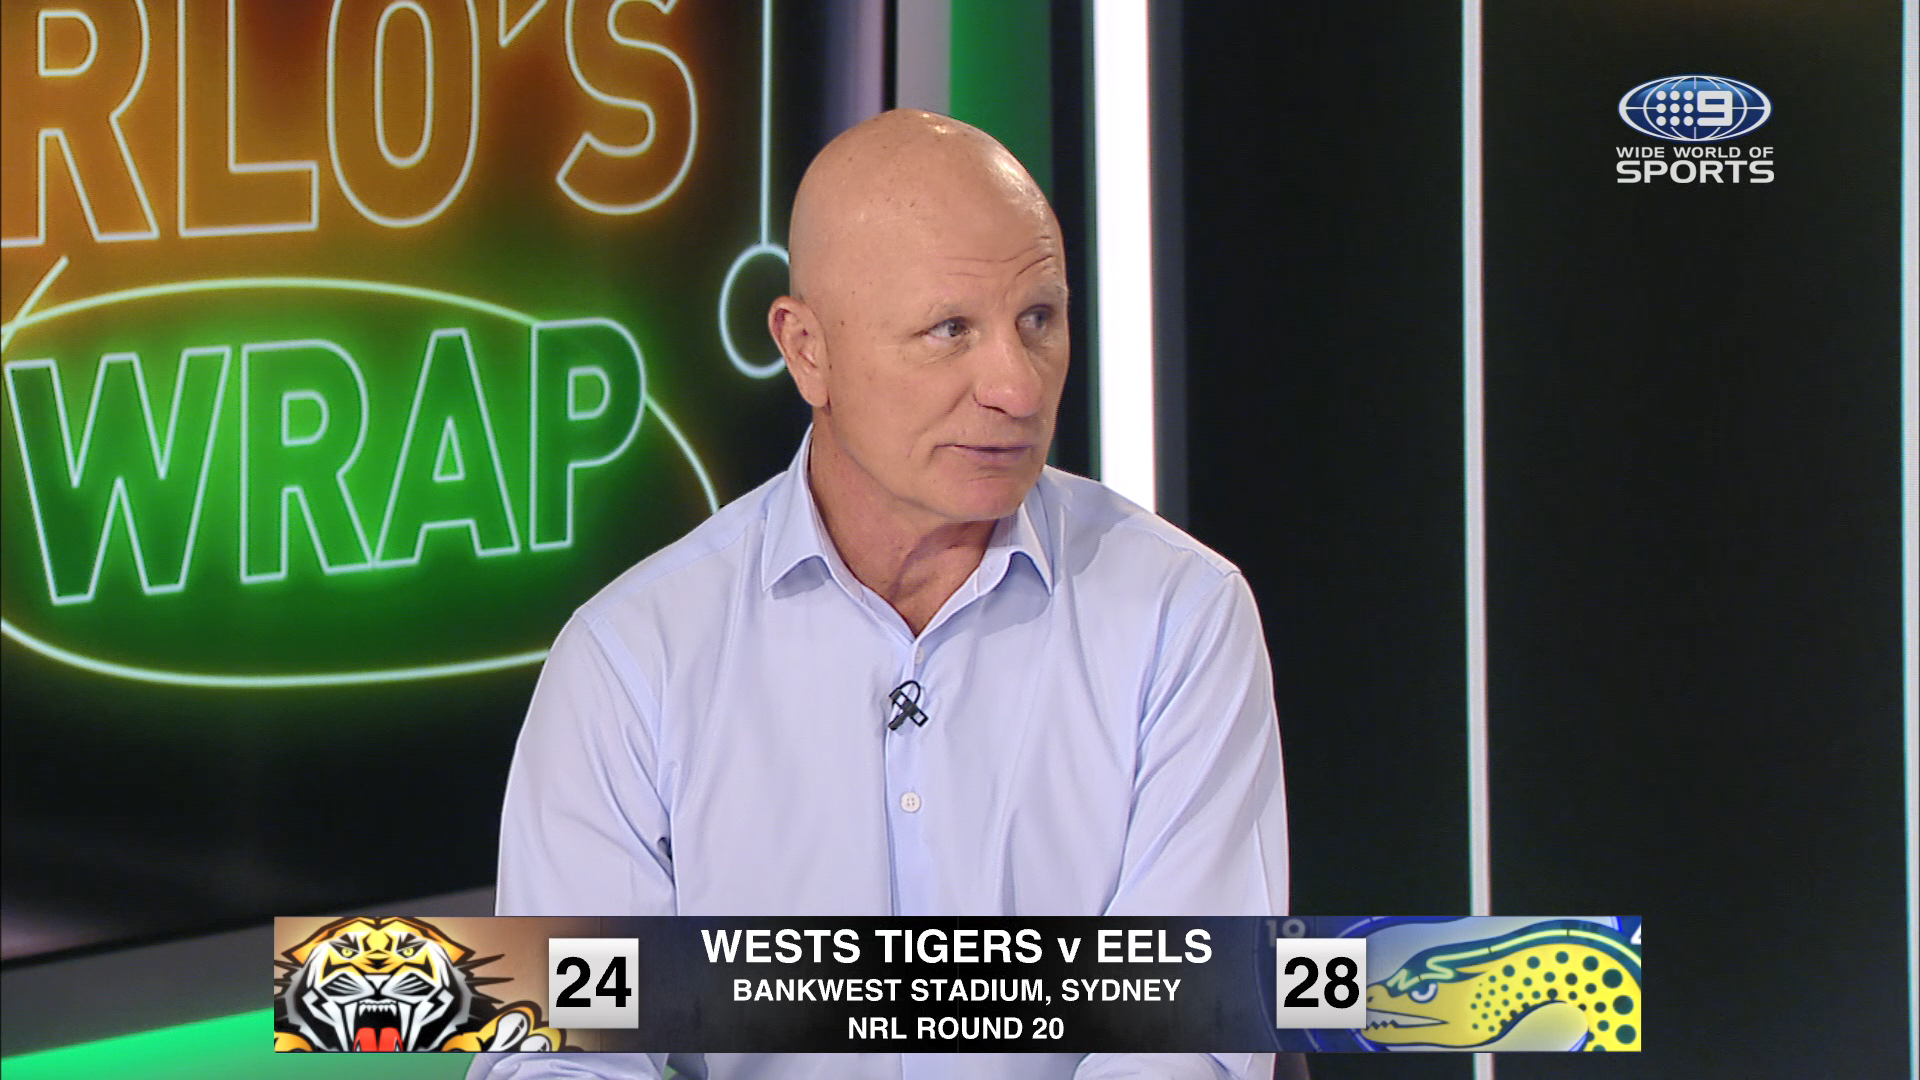 The NRL 2020 finals are here! Sterlo's Wrap - Round 20